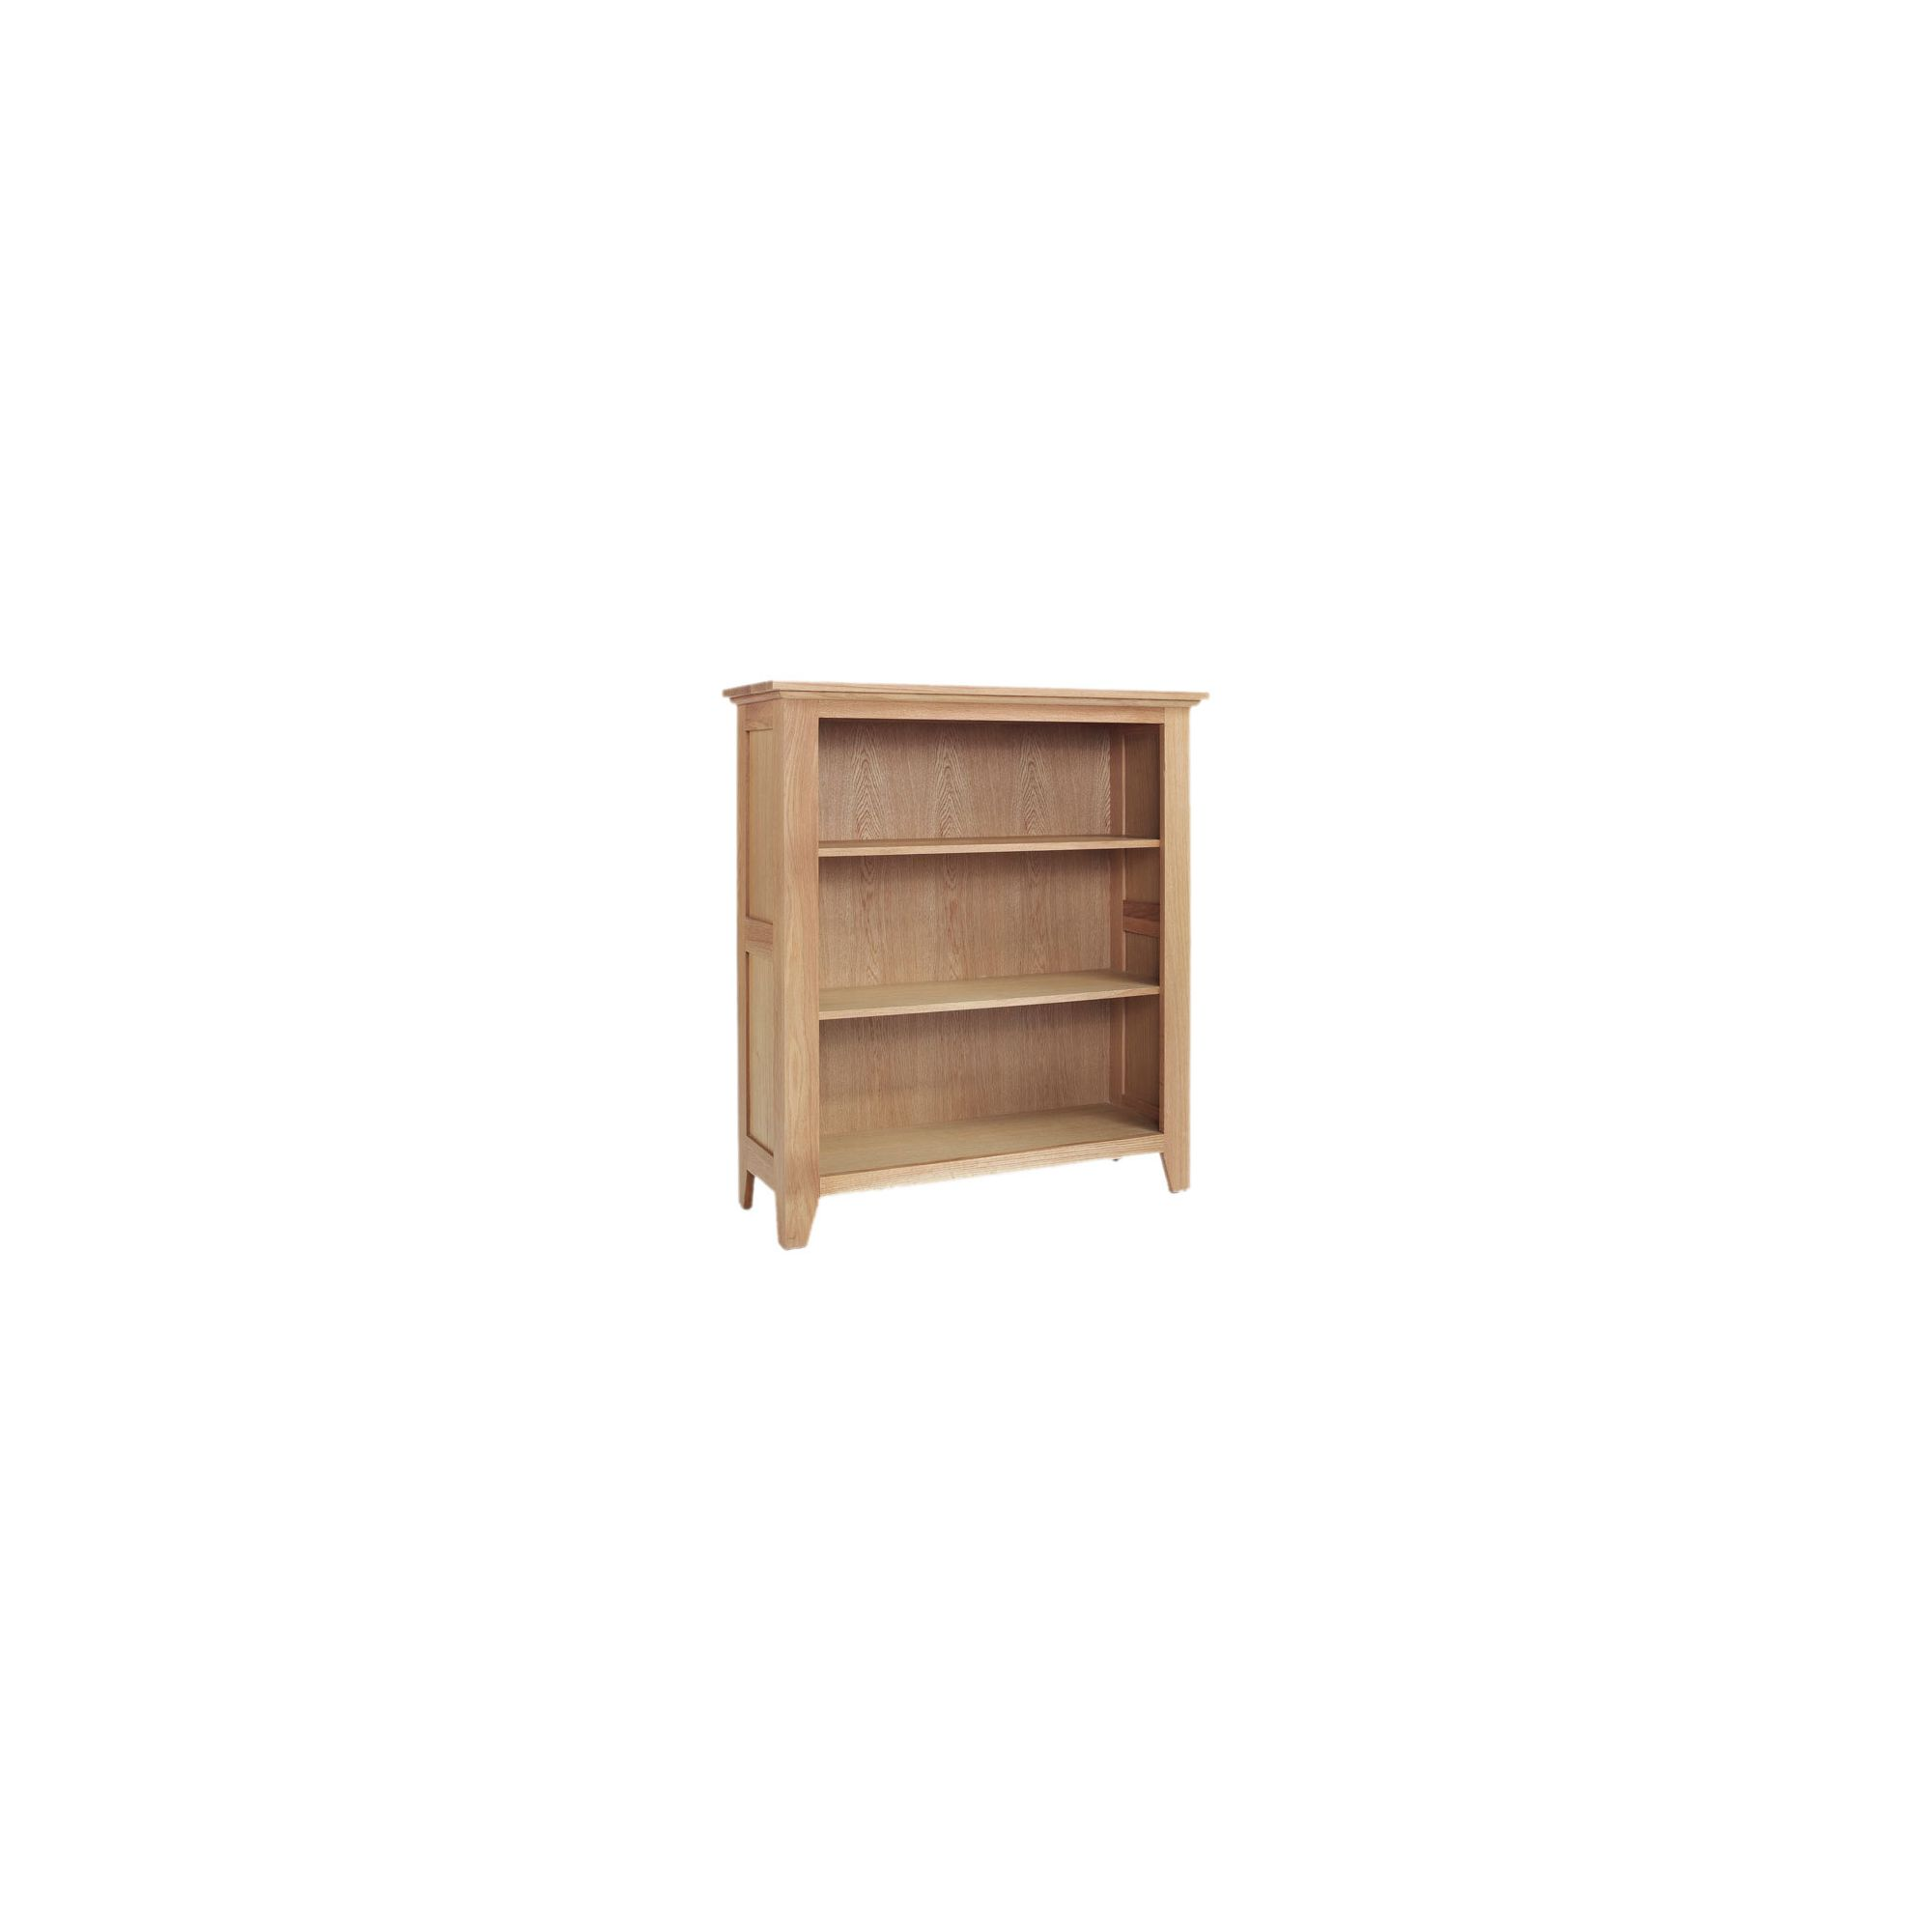 Ametis Sherwood Oak Low Bookcase at Tesco Direct